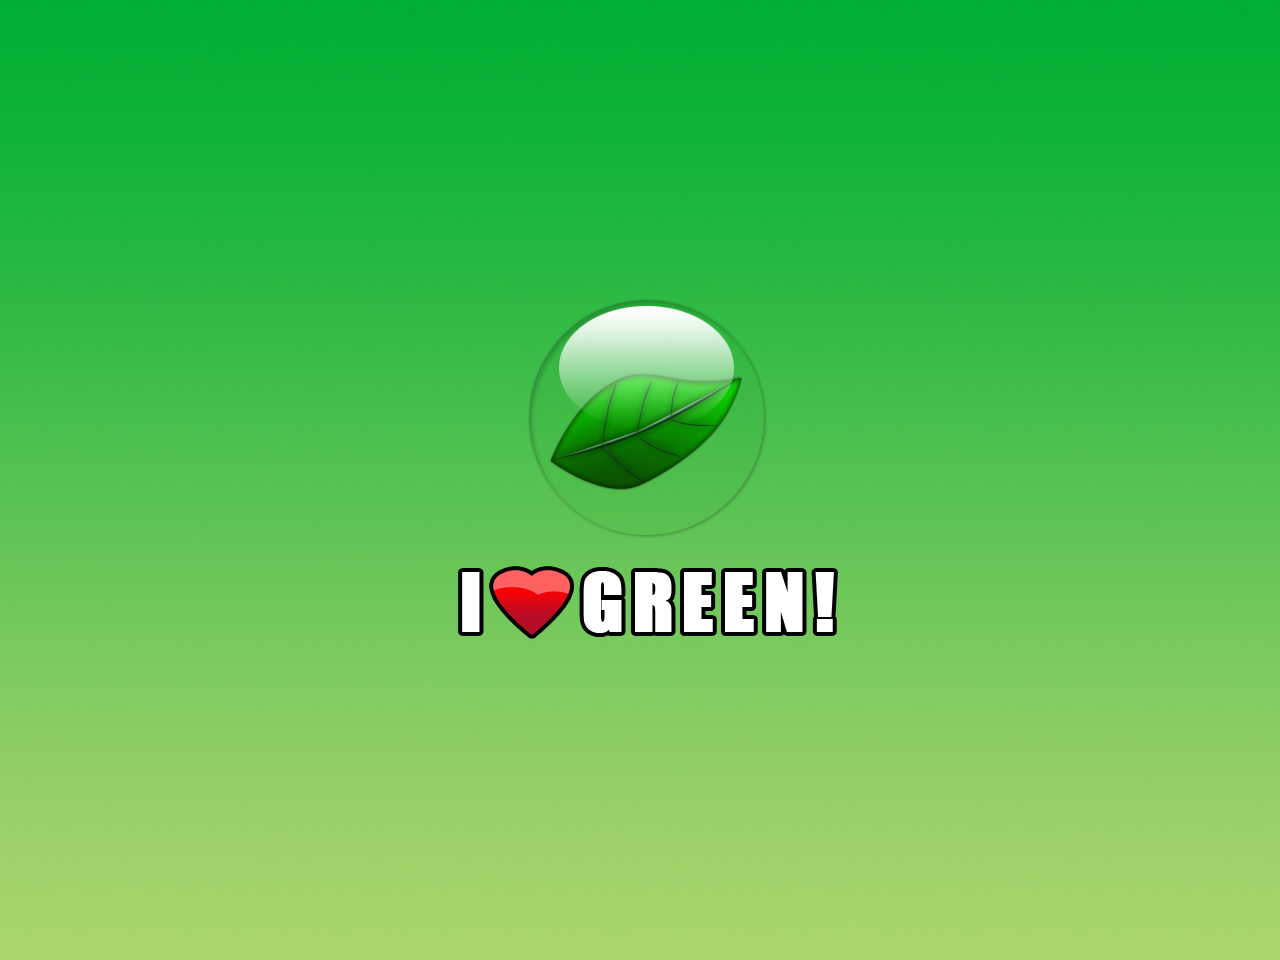 Simple Wallpaper Love Green - love-for-the-green-wallpapers_9673_1280x960  Picture_6474100.jpg